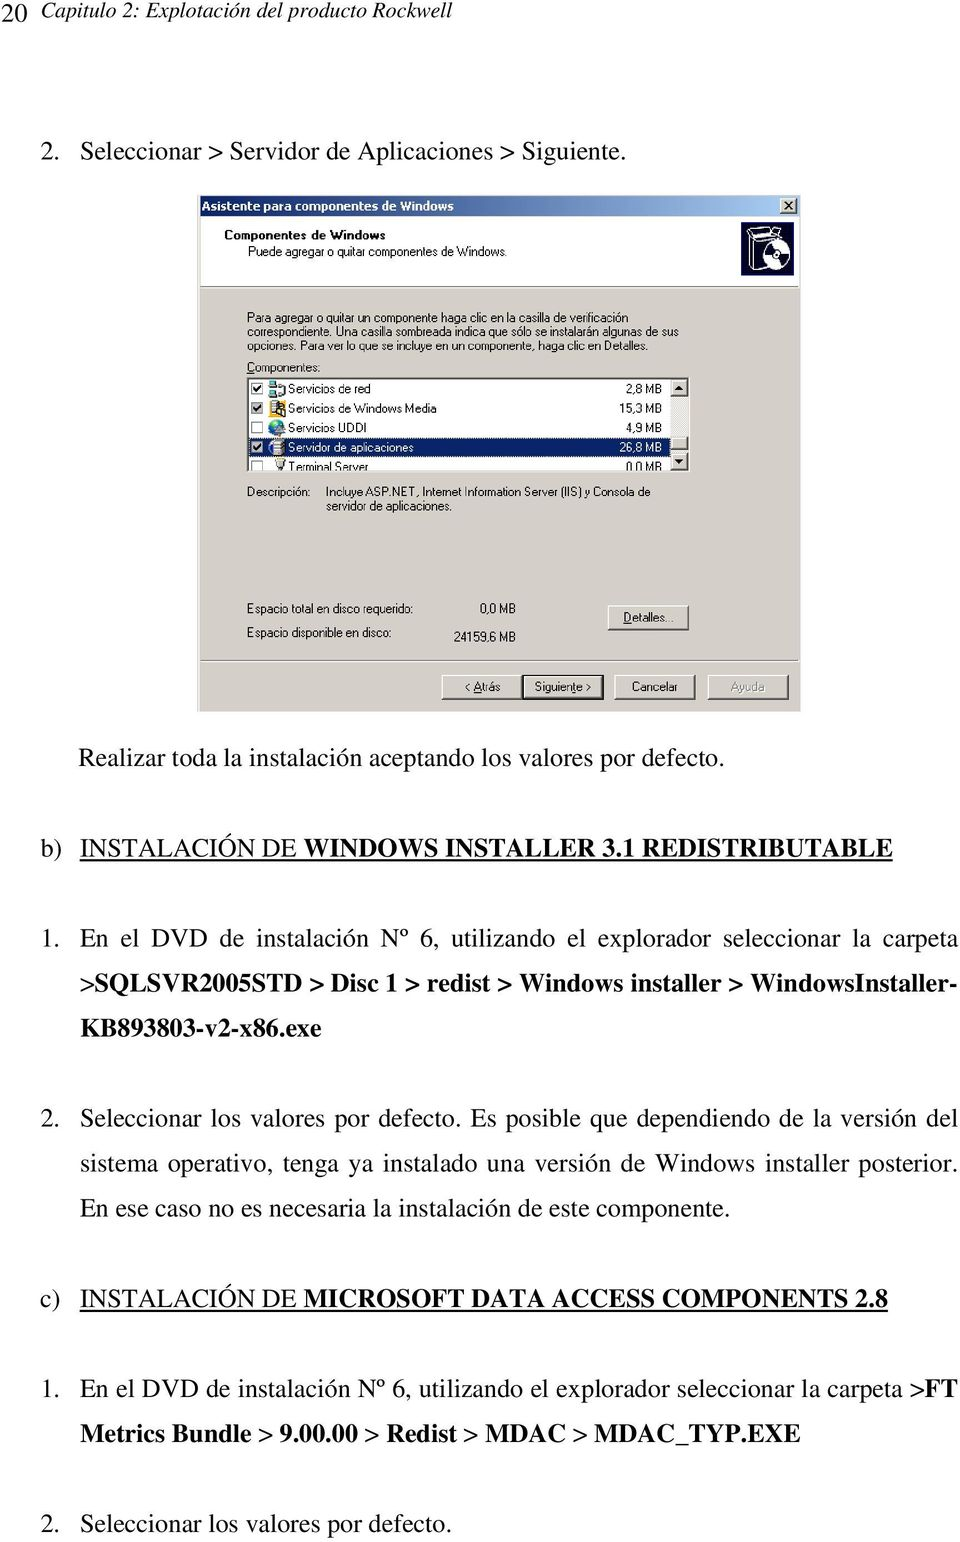 En el DVD de instalación Nº 6, utilizando el explorador seleccionar la carpeta >SQLSVR2005STD > Disc 1 > redist > Windows installer > WindowsInstaller- KB893803-v2-x86.exe 2.